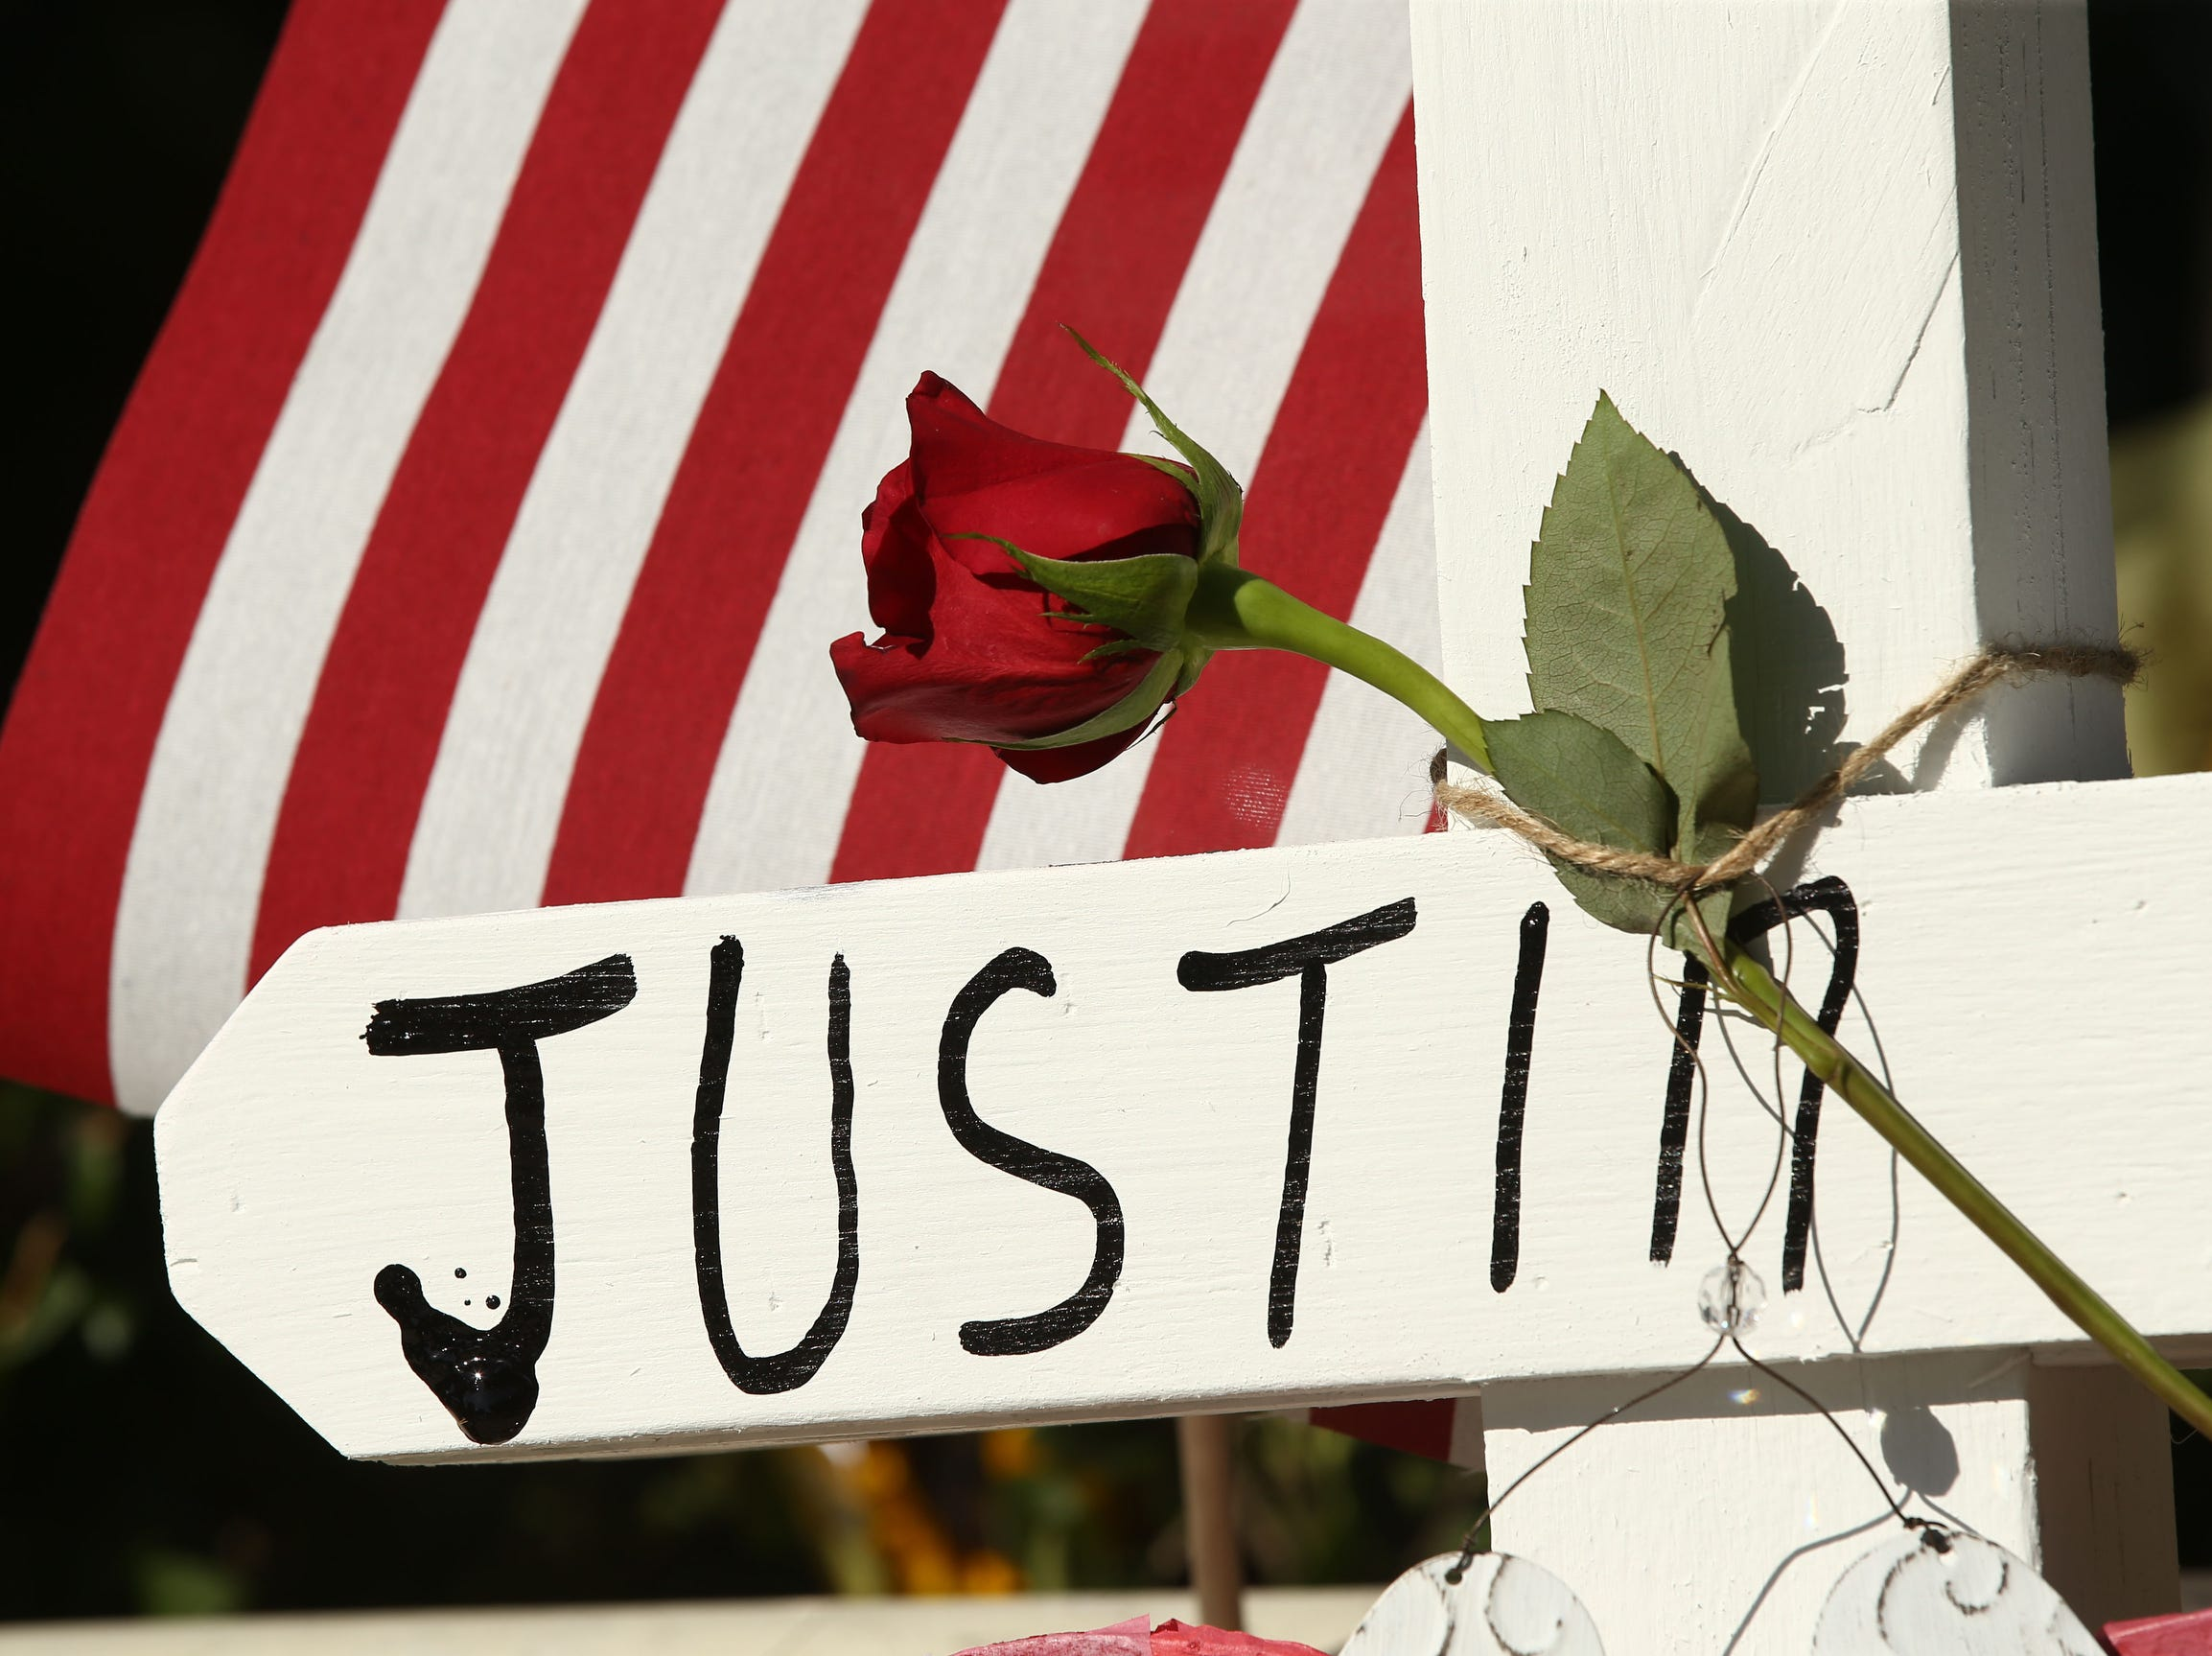 A rose sits atop the cross for Justin Meeks, as the mass shooting victims memorial grows in Thousand Oaks, Calif. Twelve people were shot and killed Wednesday by gunman Ian David Long who opened fire at the Borderline Bar and Grill.